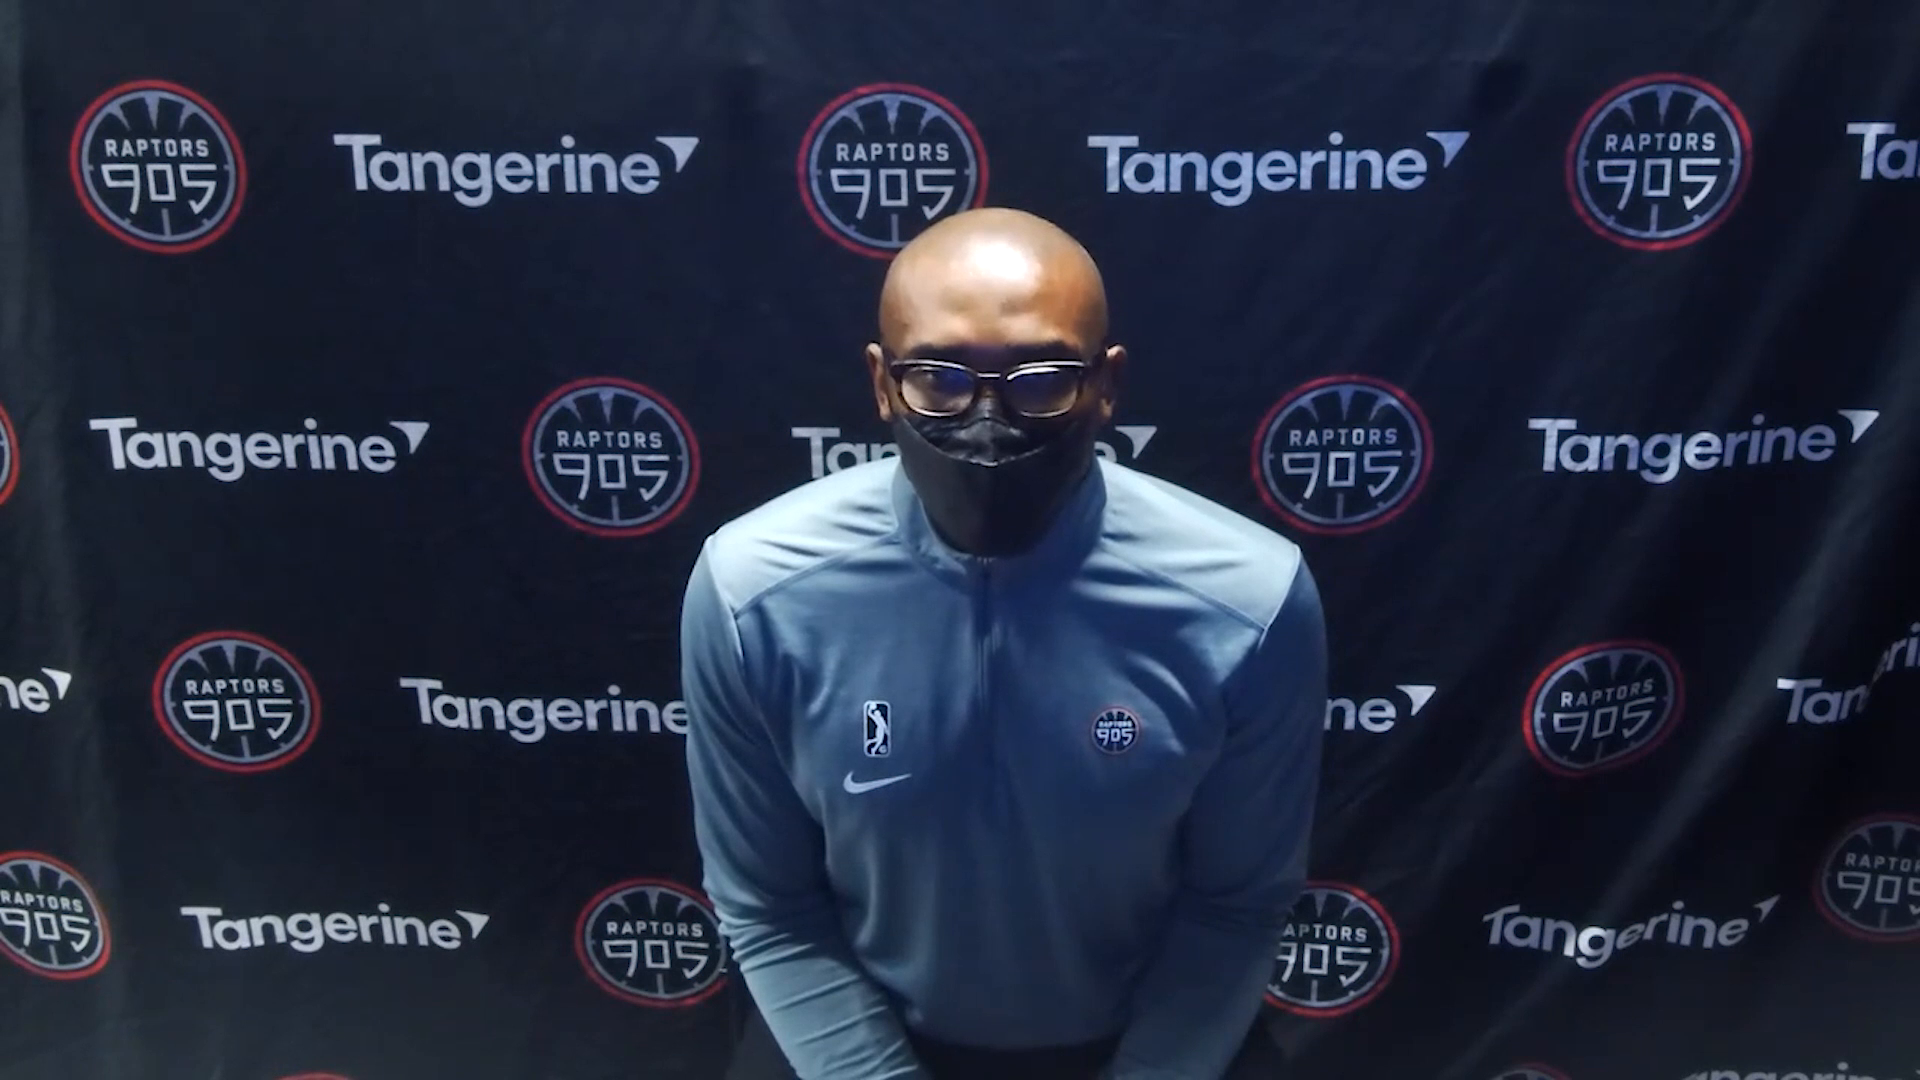 Raptors 905 Post Game: Patrick Mutombo - February 27, 2021